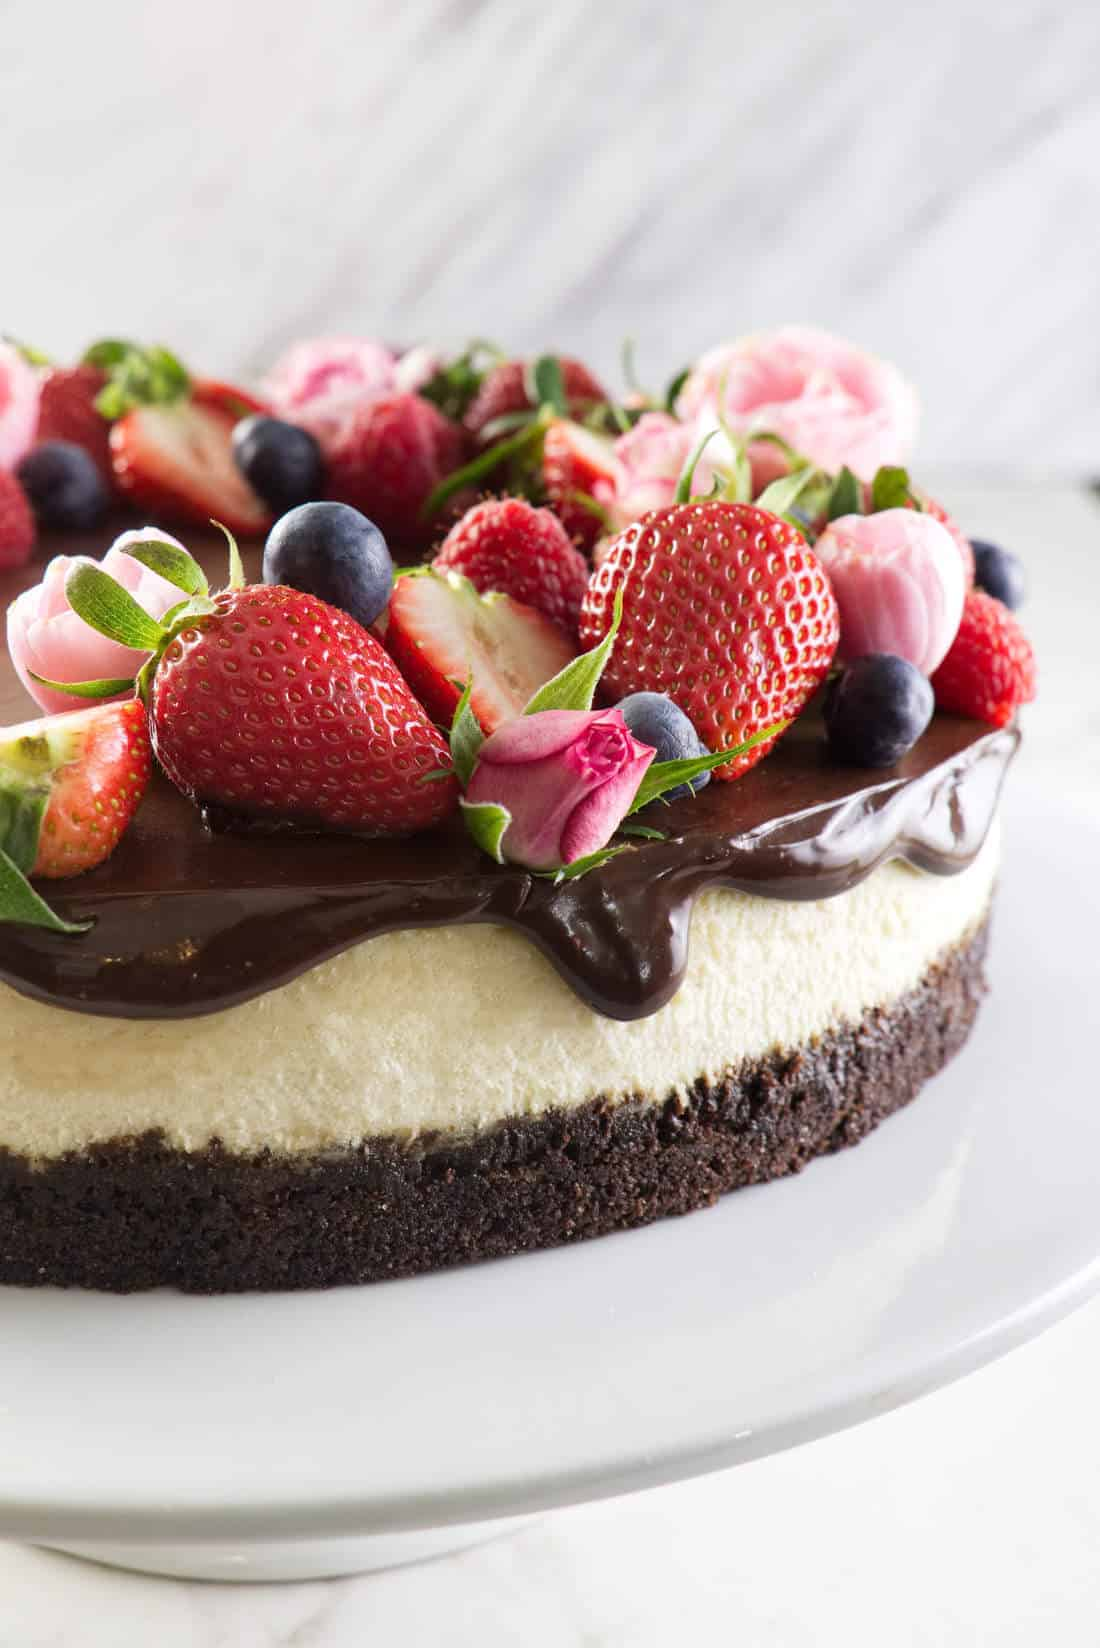 Bourbon Vanilla Cheesecake with Chocolate Ganache from Savor the Best